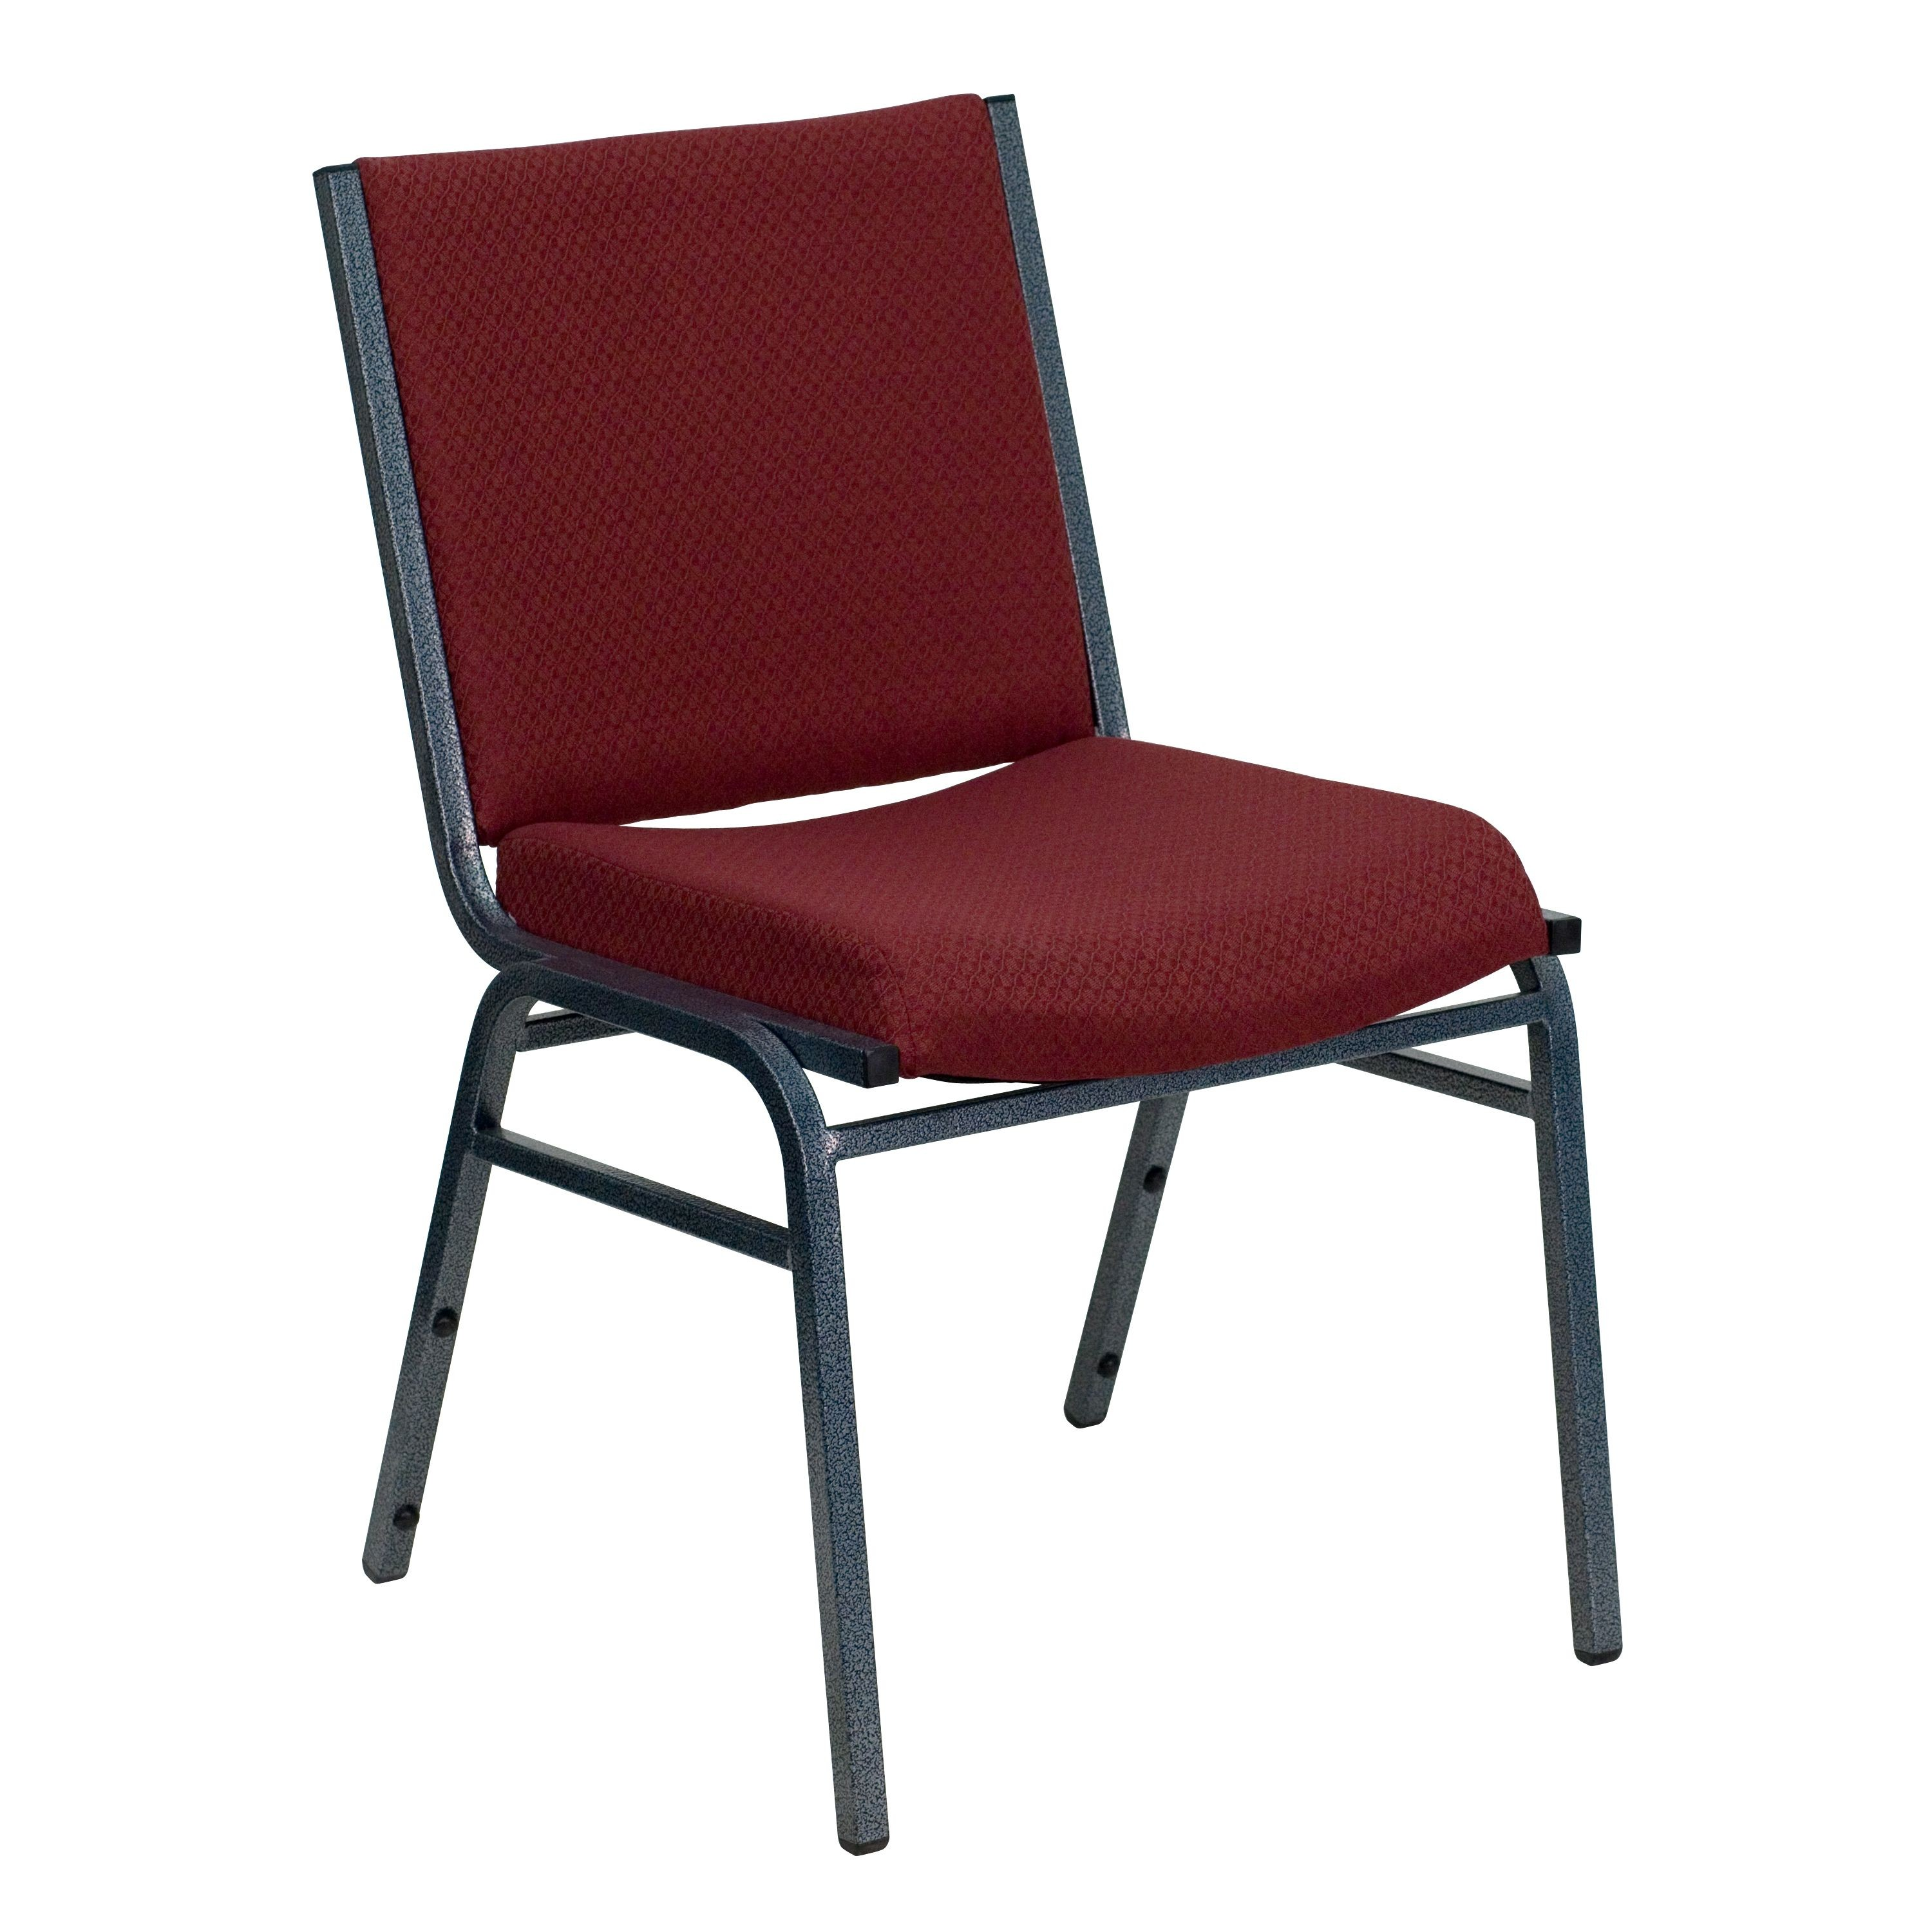 Flash Furniture XU-60153-BY-GG Heavy Duty, 3'' Thickly Padded, Burgundy Patterned Upholstered Stack Chair